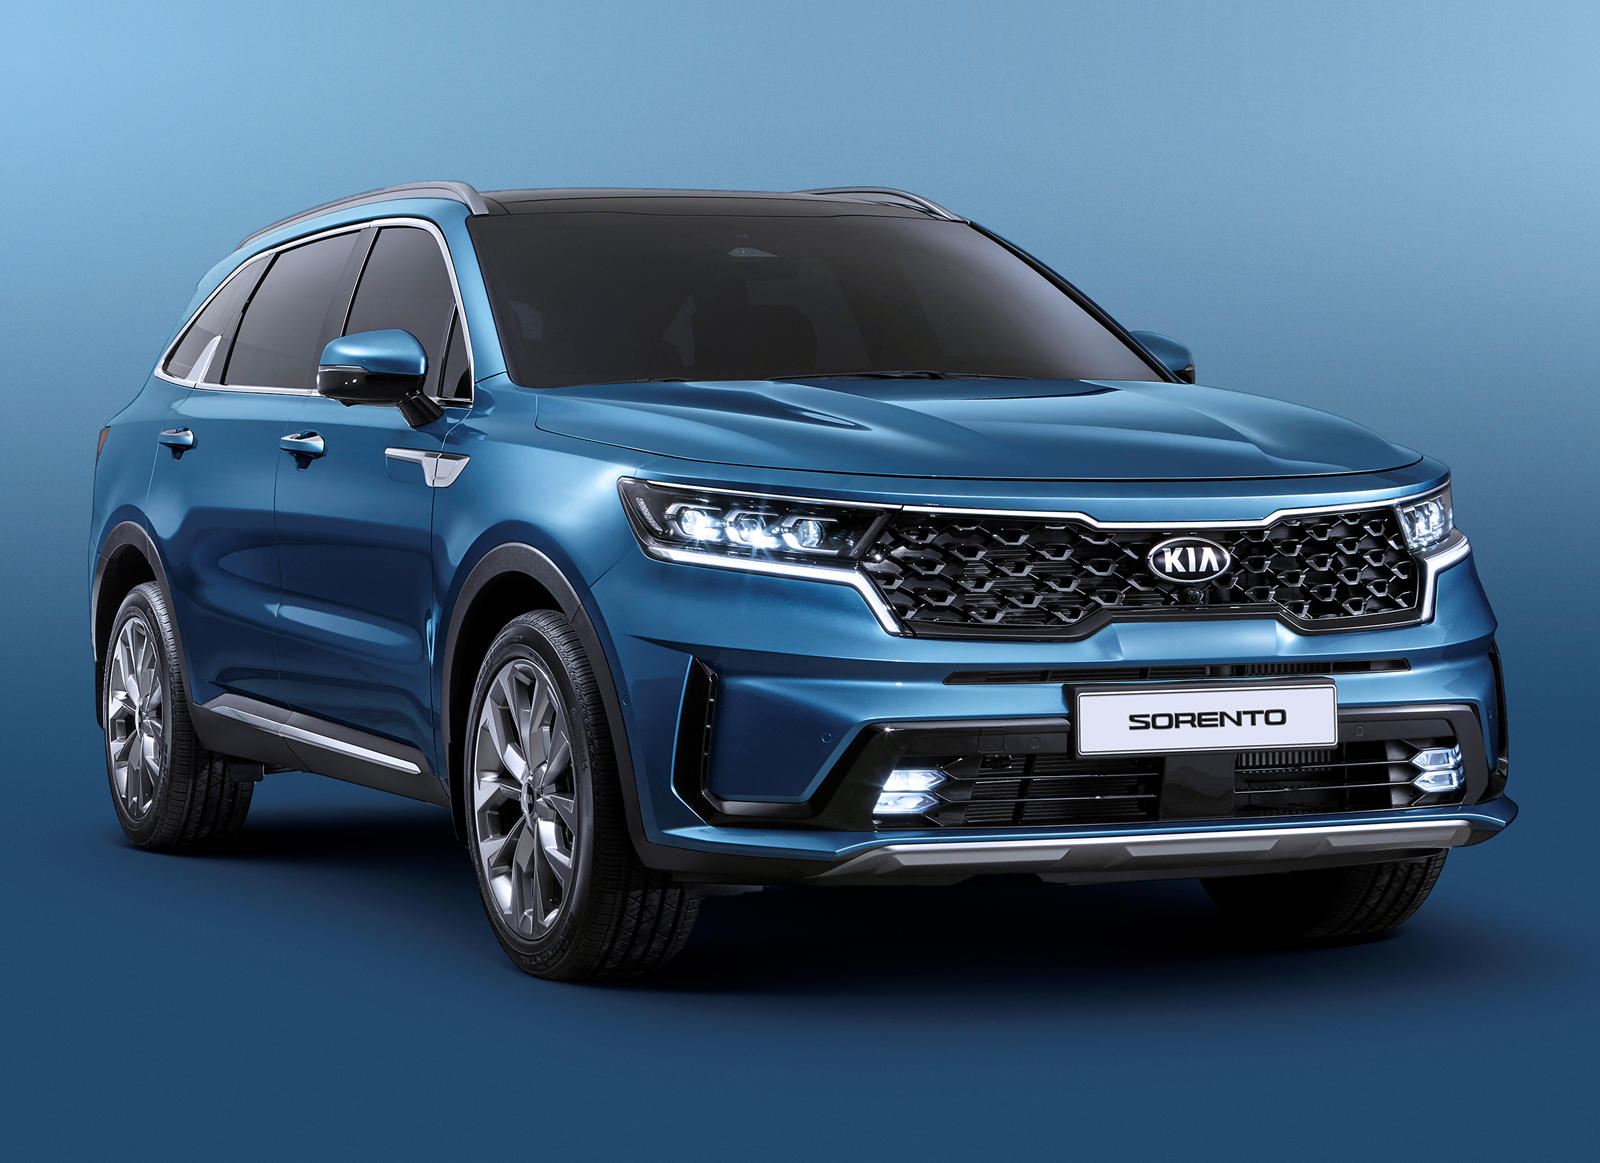 meet the allnew 2021 kia sorento  carbuzz